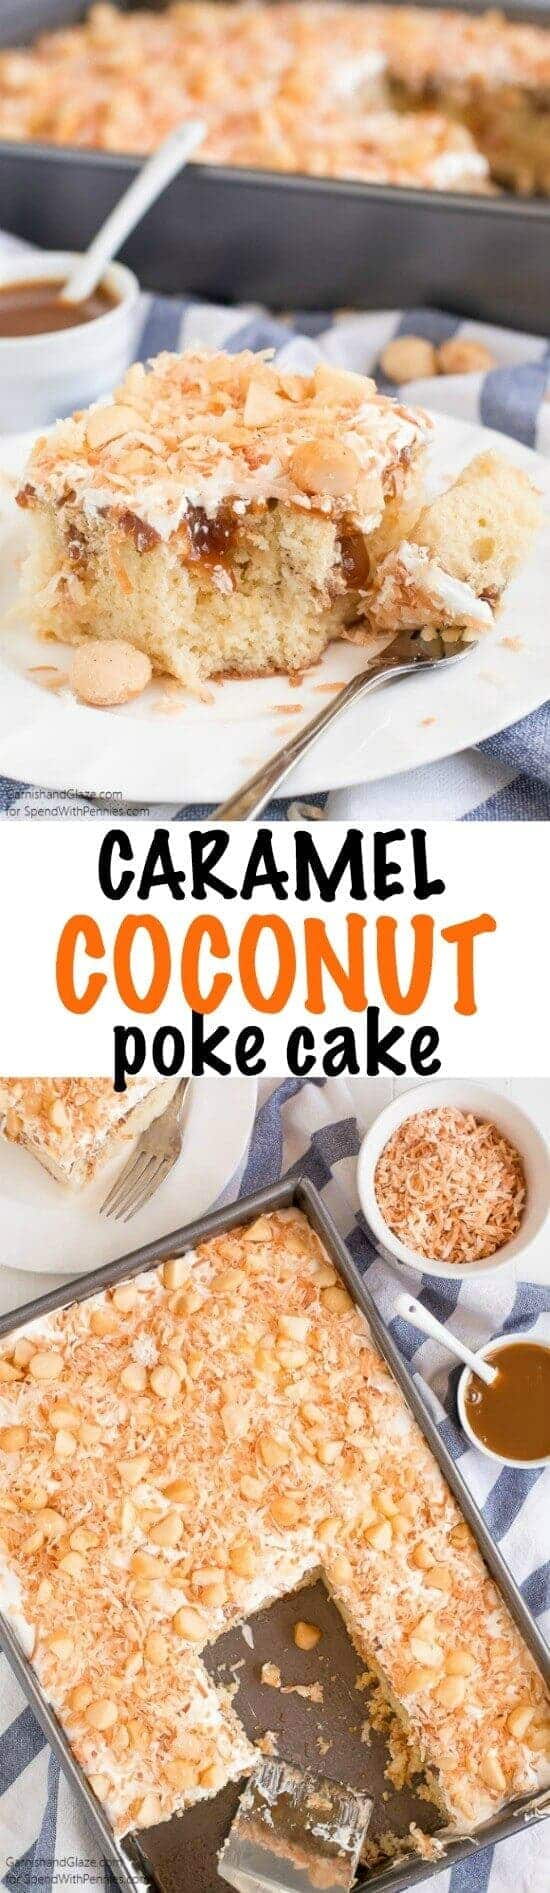 Coconut Caramel Poke Cake with a title